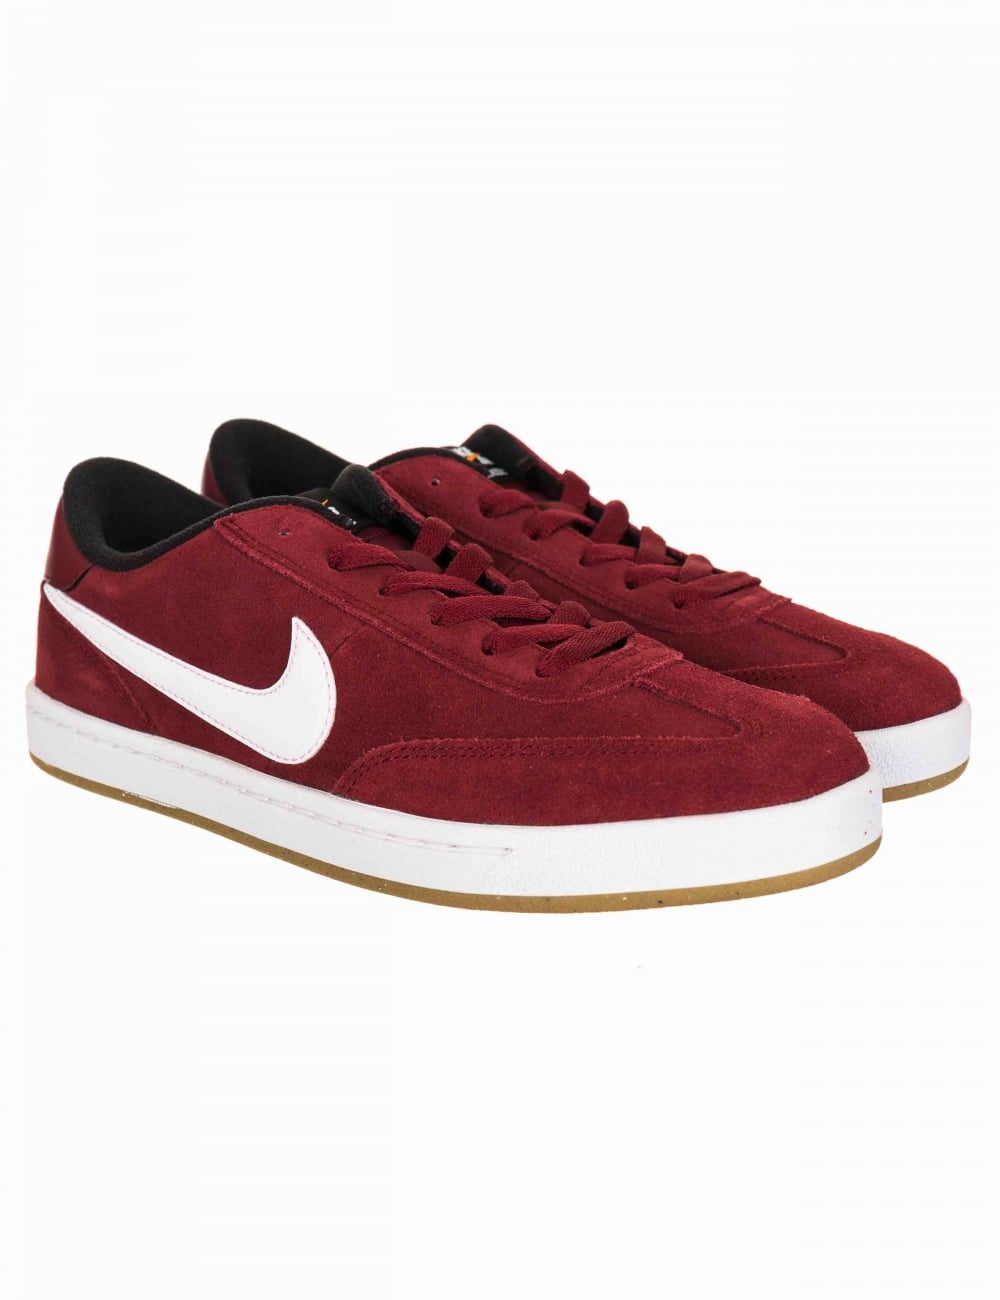 9c304af2713b Nike SB FC Classic Shoes - Team Red Black - Trainers from Fat Buddha ...